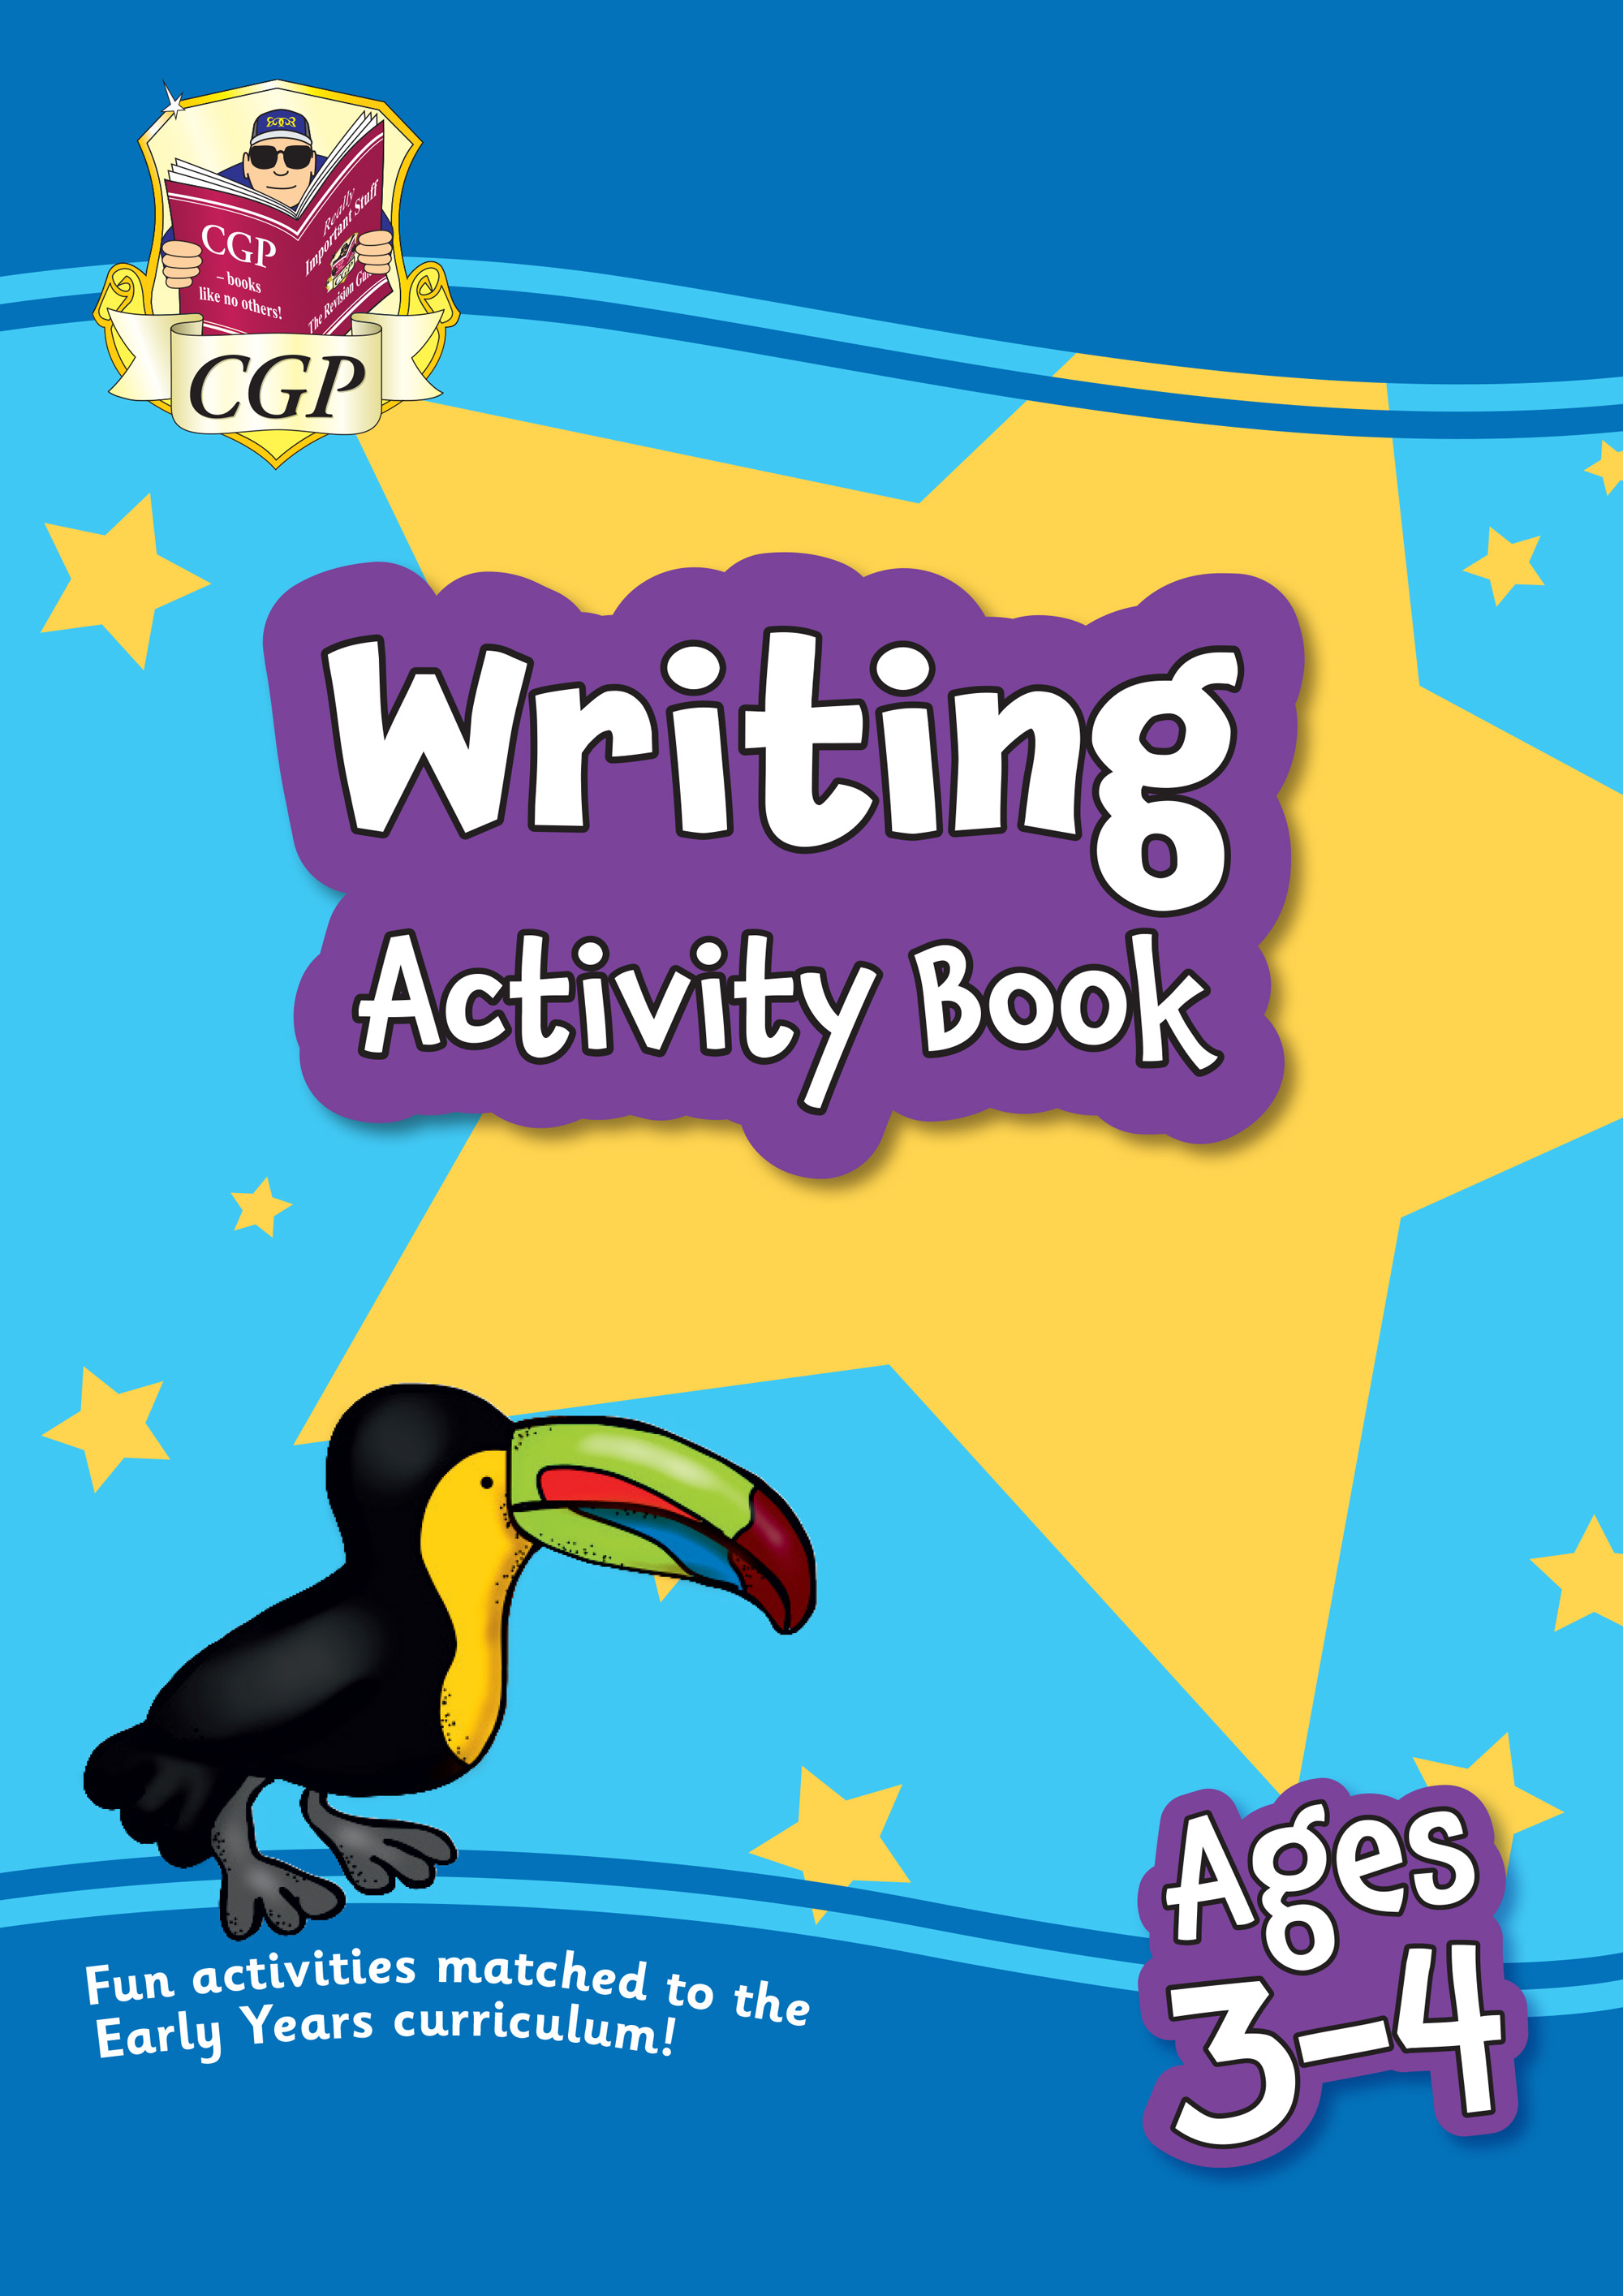 EPFEH01 - New Writing Home Learning Activity Book for Ages 3-4